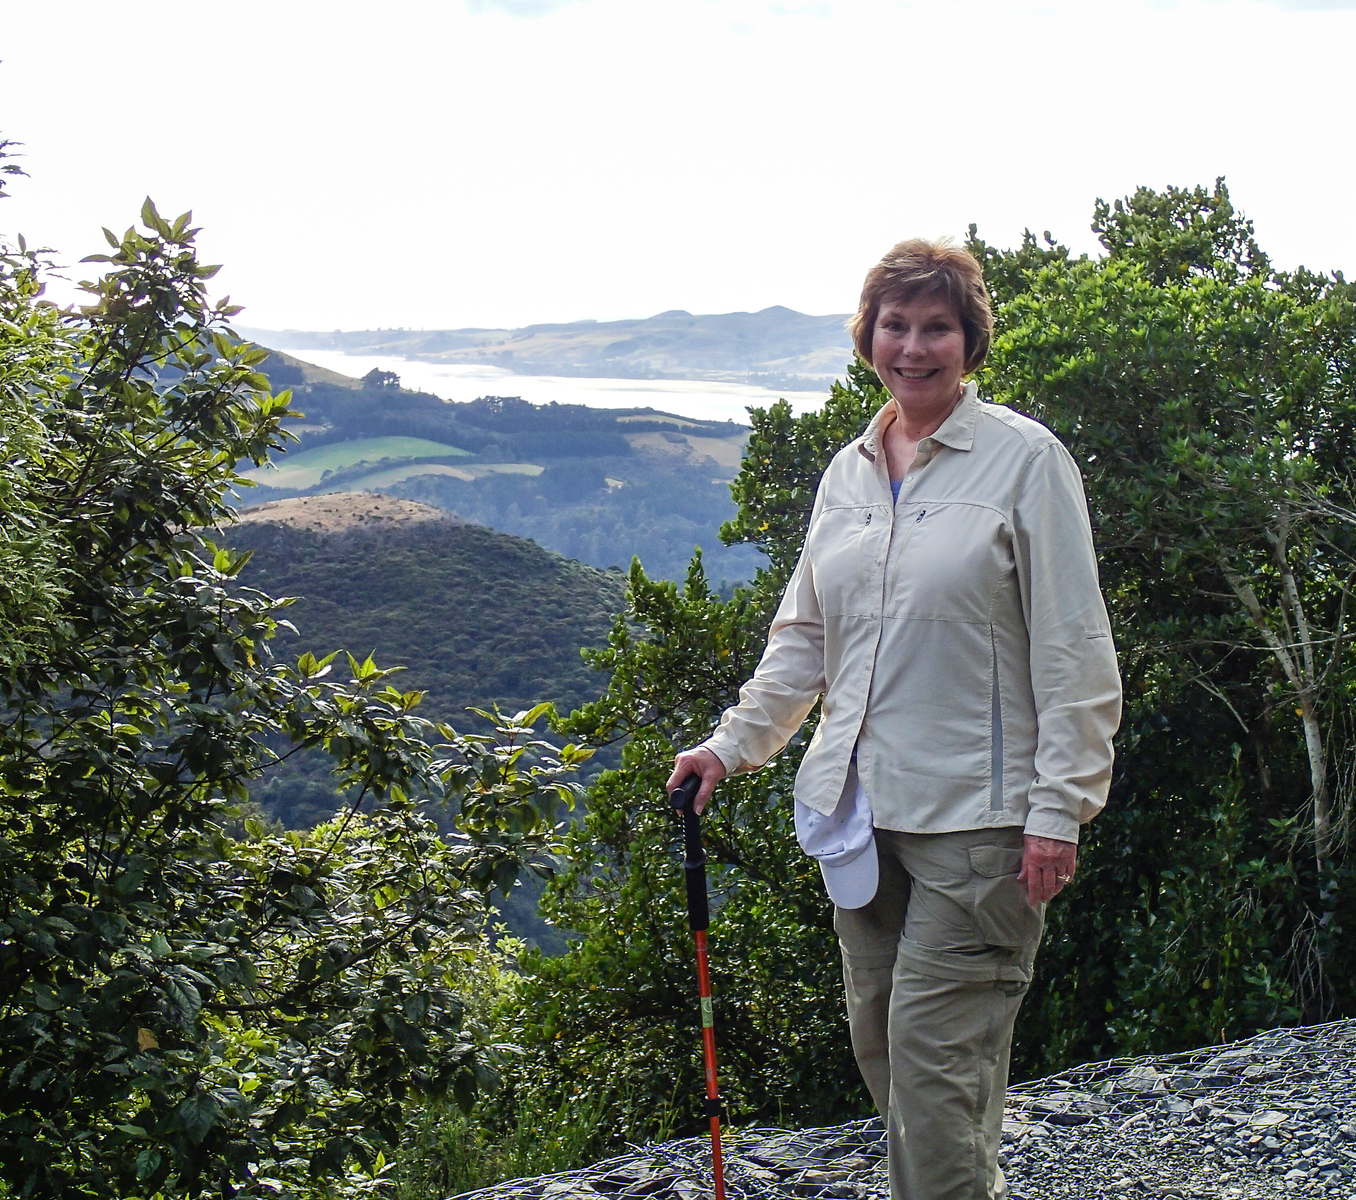 woman hiker in front of mountain view